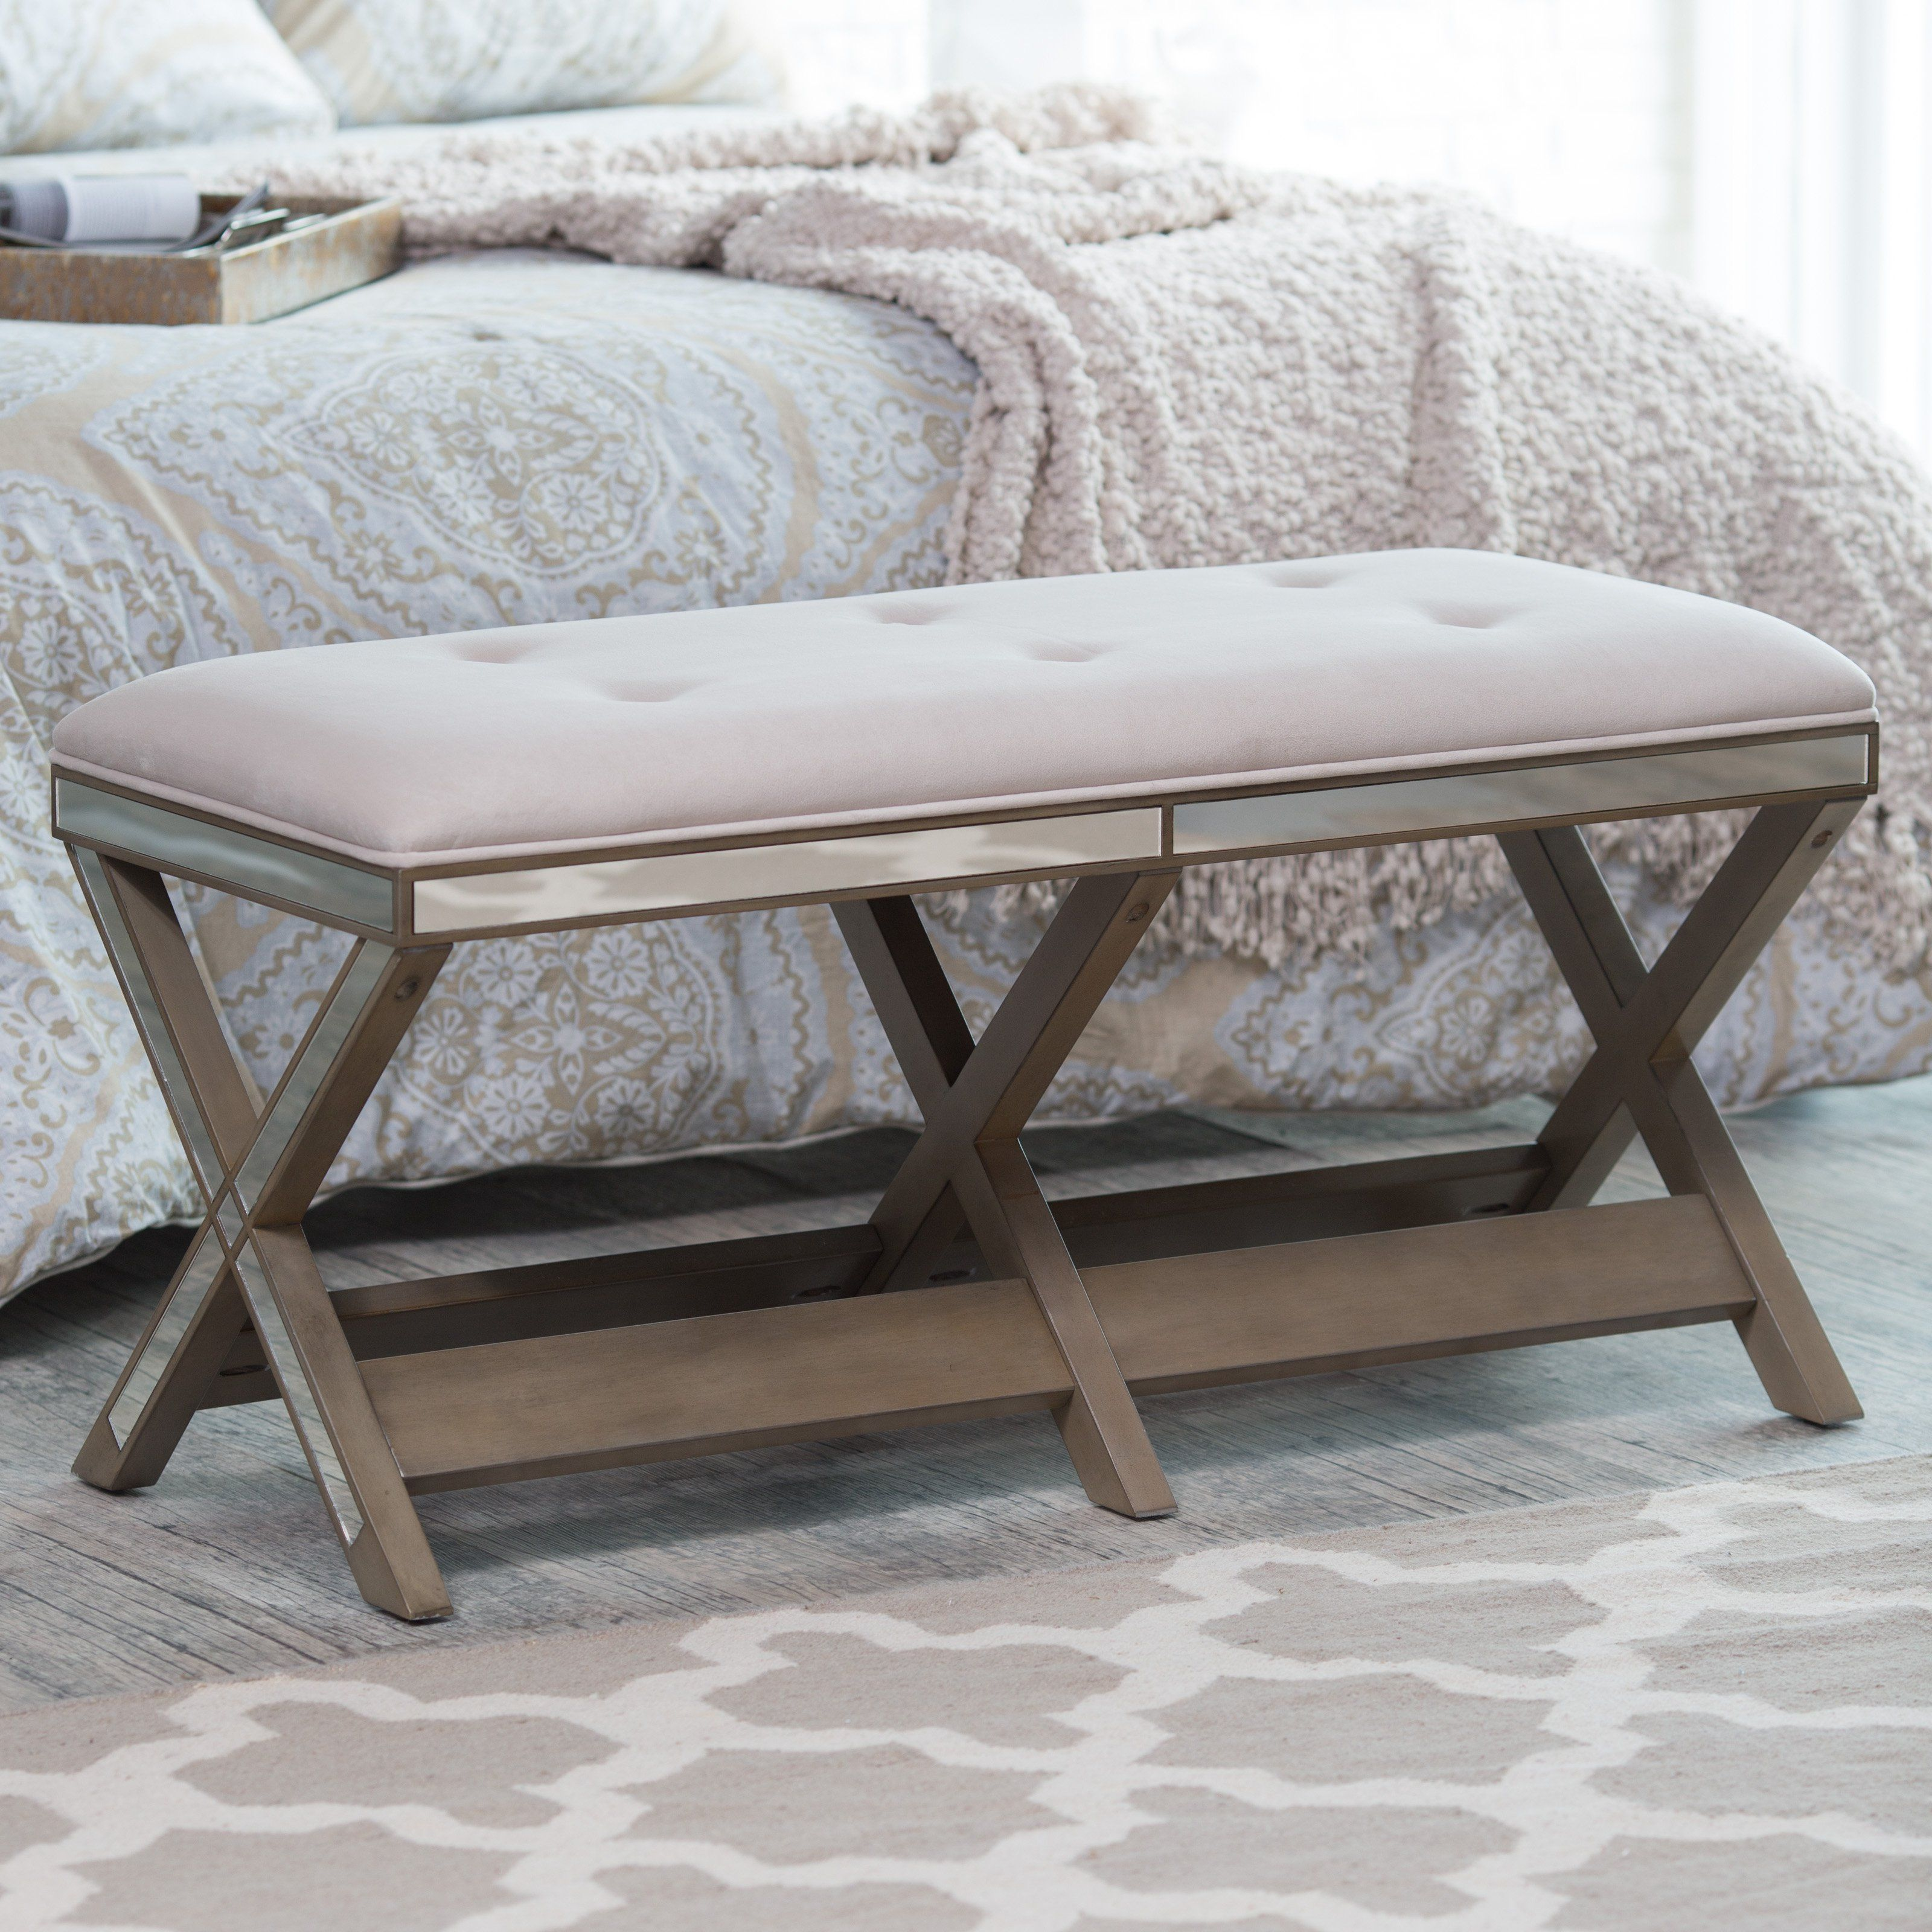 Belham Living Cushioned Indoor Bench With Mirrored Frame Upholstered Bench Indoor Bench Benches For Sale